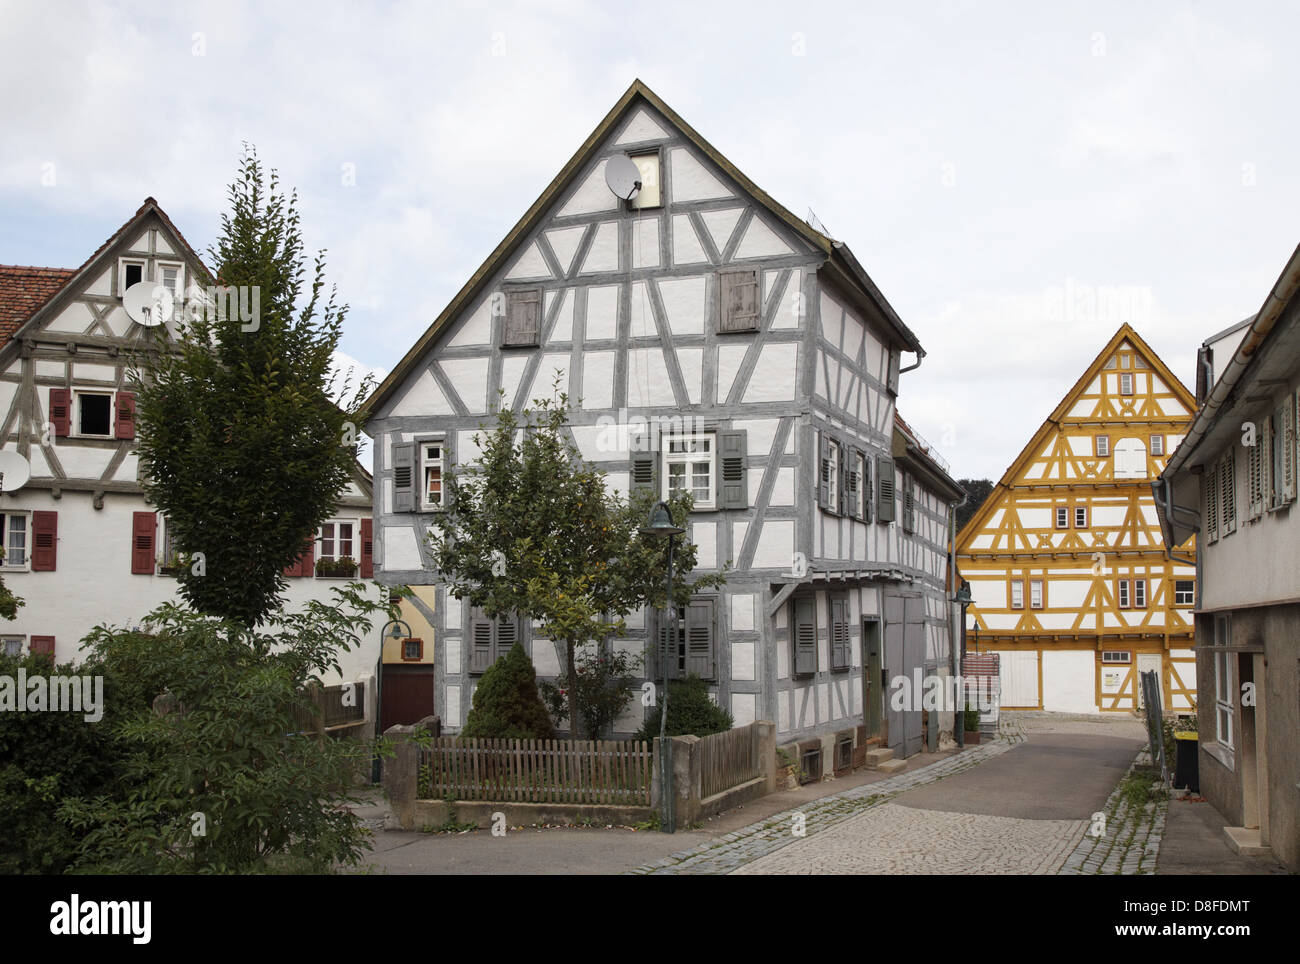 germany baden wuerttemberg waiblingen timbered house peaceful stock photo royalty free image. Black Bedroom Furniture Sets. Home Design Ideas